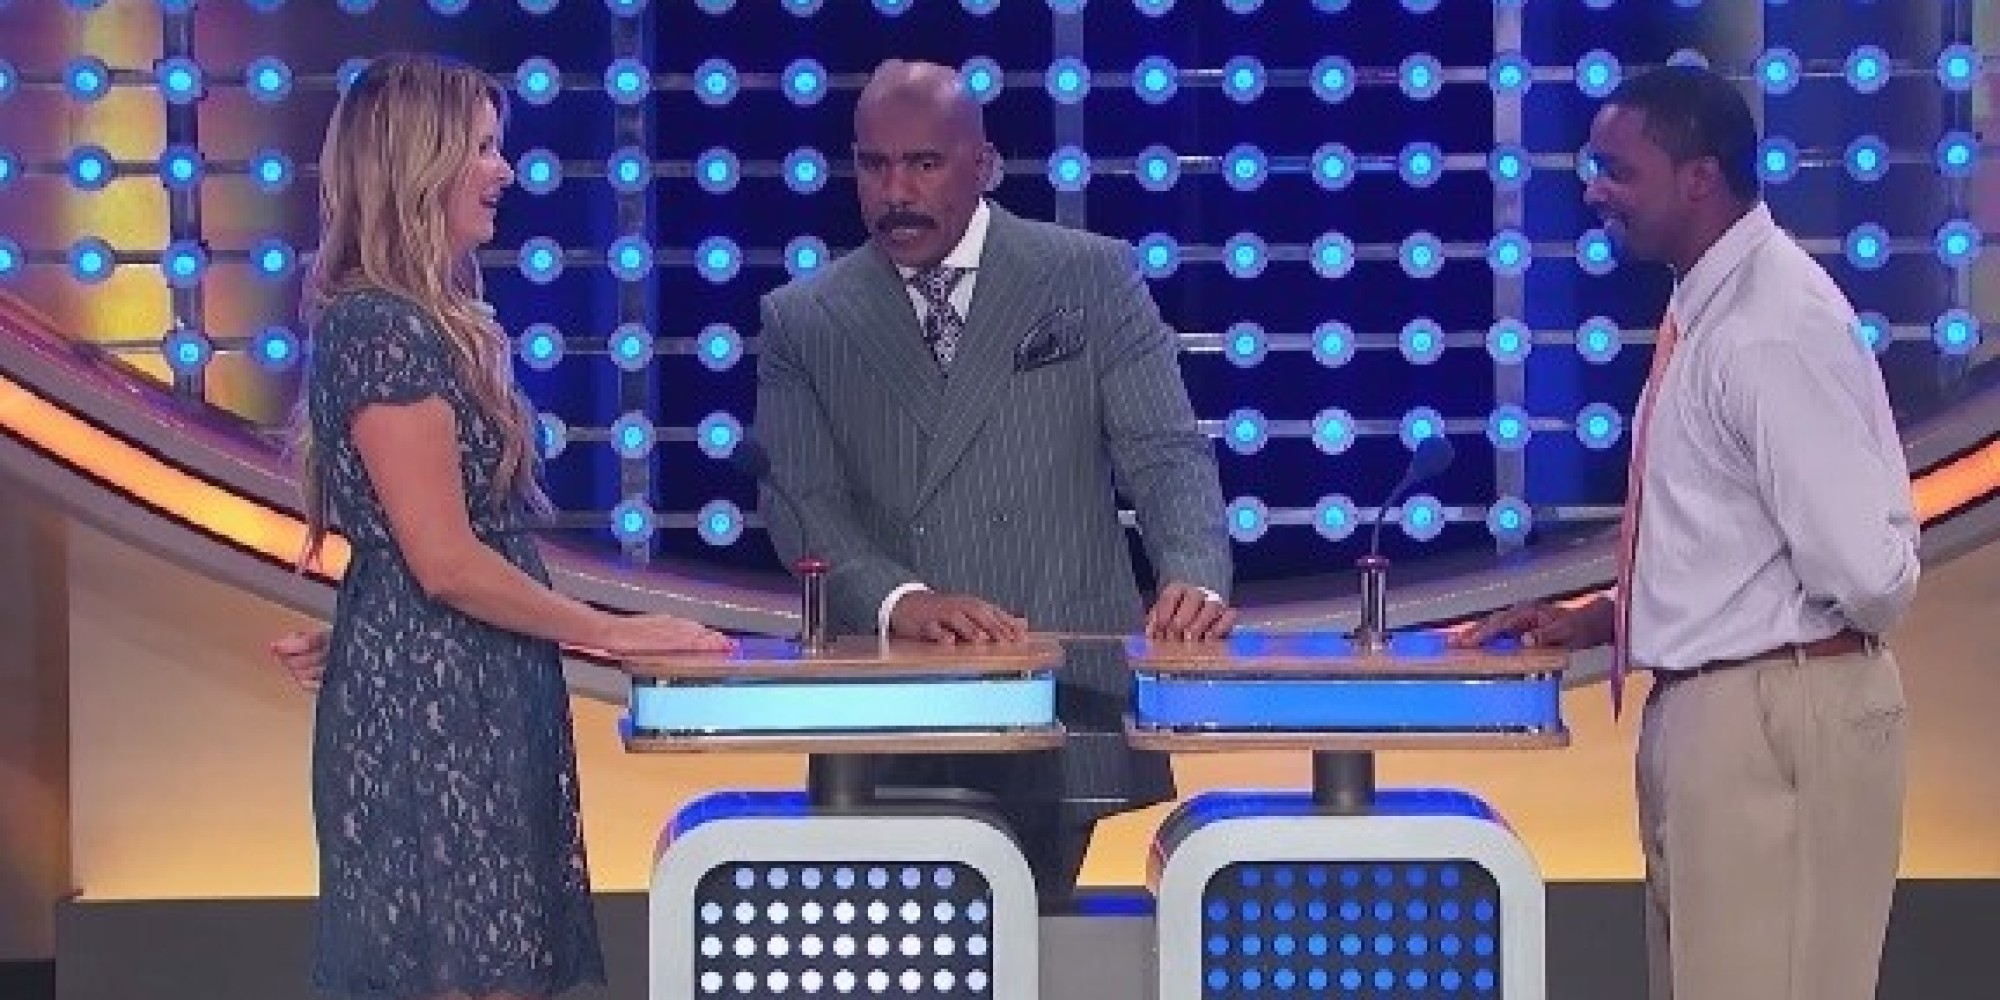 Family feud contestant says awkward answer a little too quickly